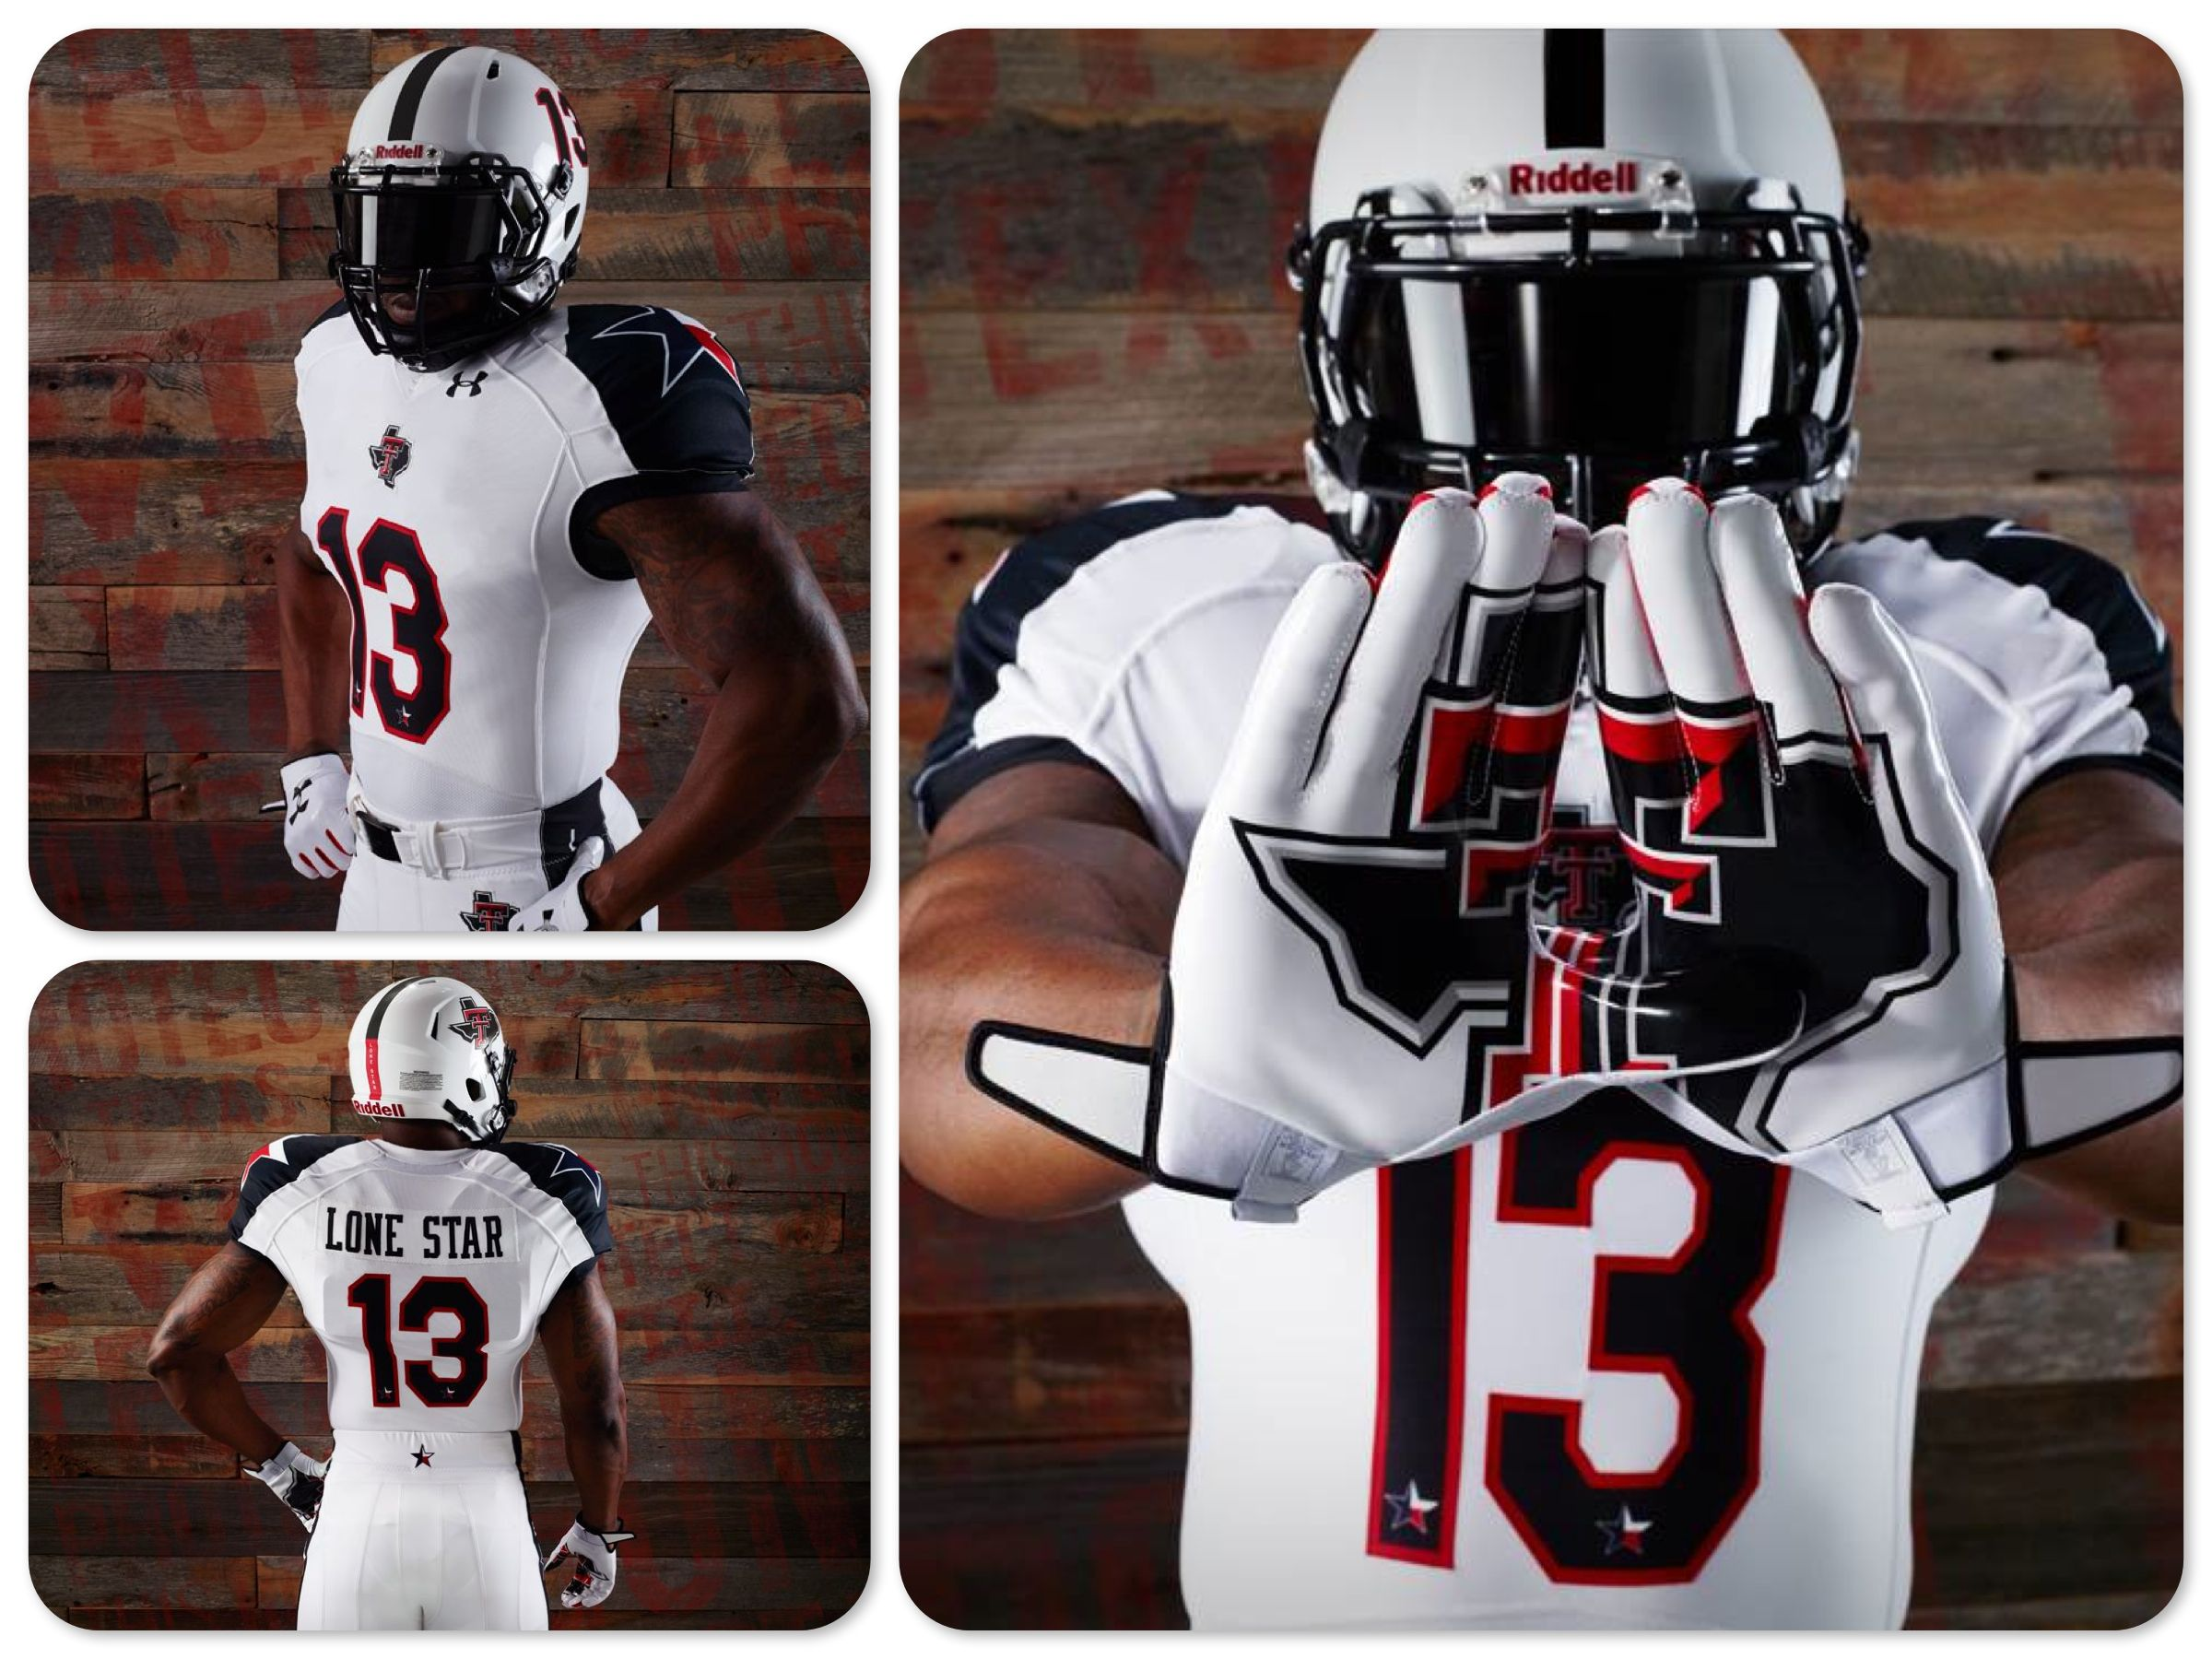 Texas Tech Lone Star Pride Uniforms for Thanksgiving Day